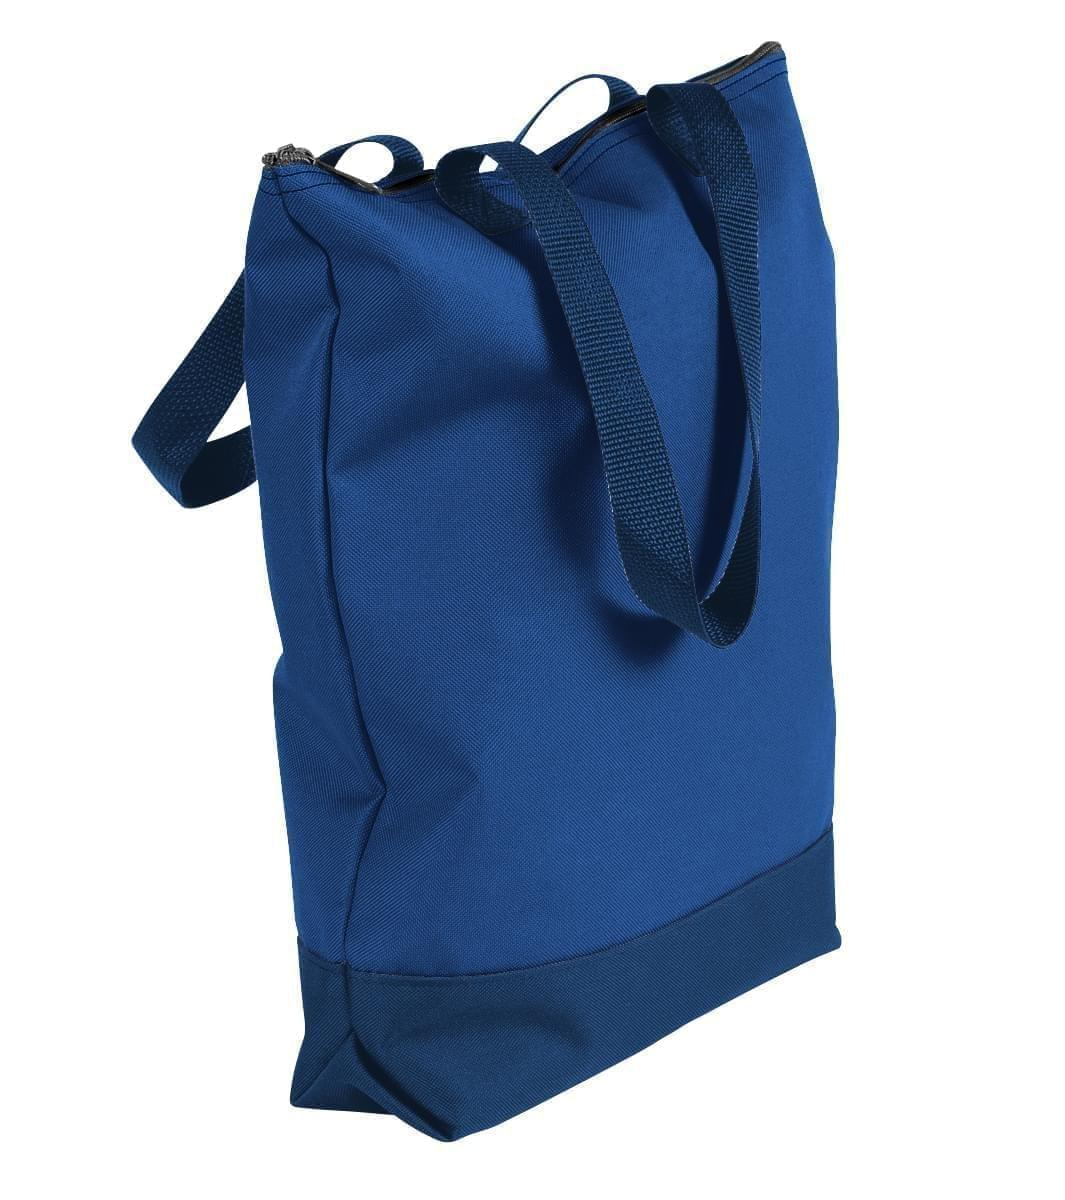 USA Made Canvas Portfolio Tote Bags, Royal Blue-Navy, 1AAMX1UAFZ